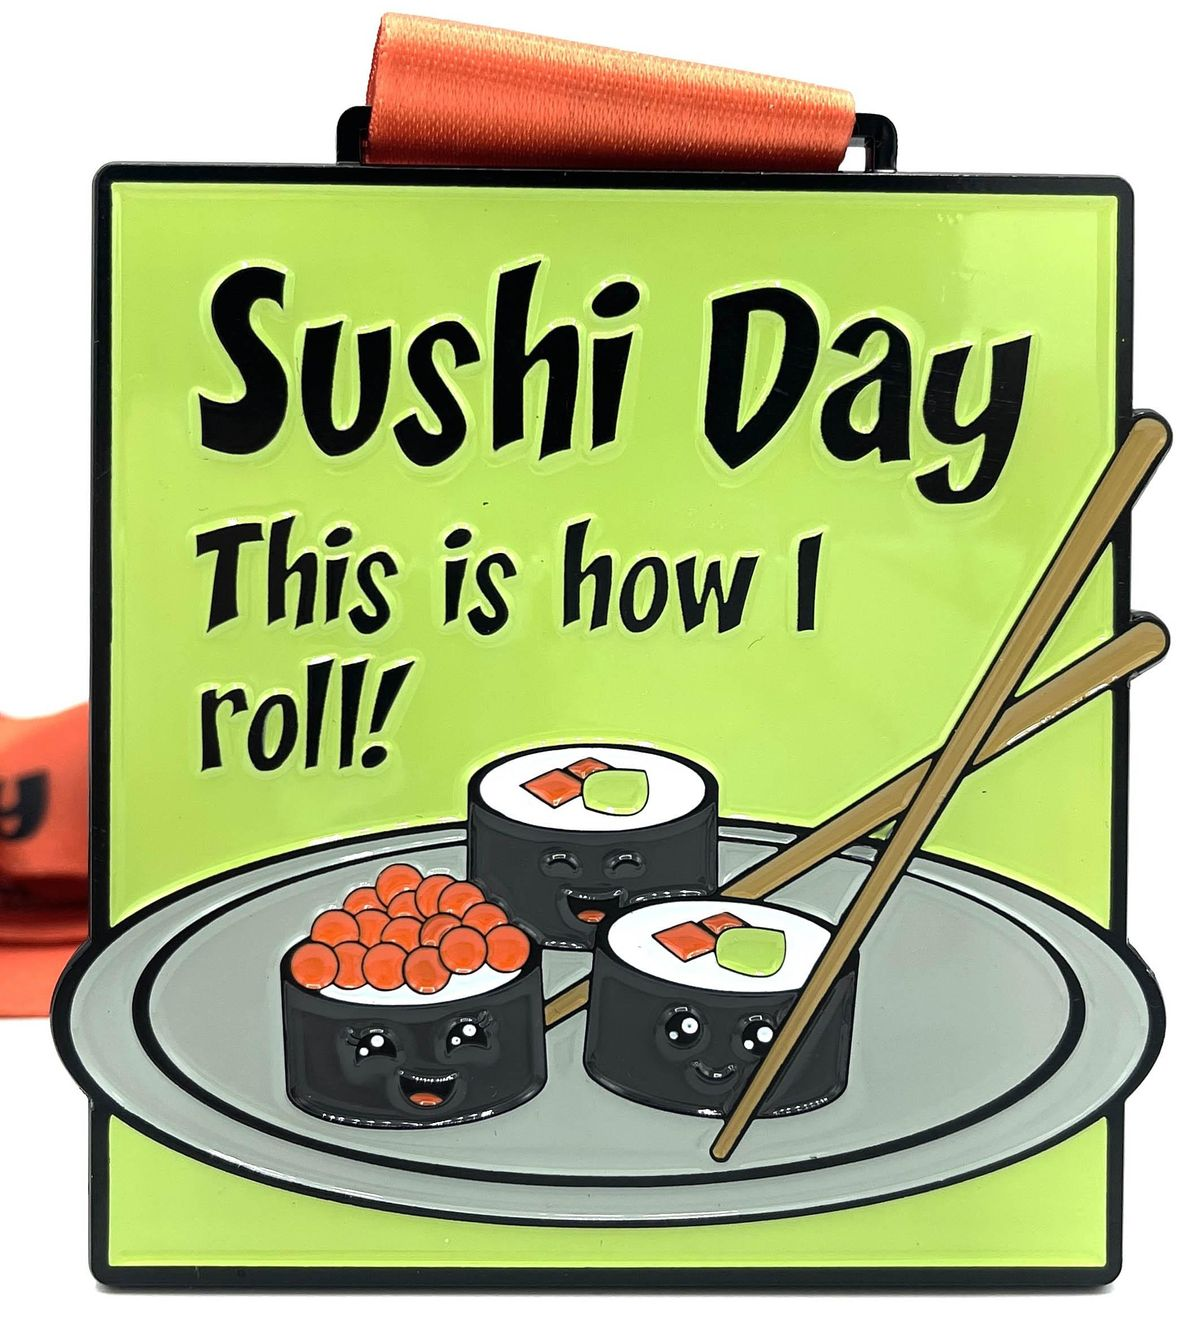 Save $10! Sushi Day 1M 5K 10K 13.1 26.2-Participate from Home.   Online Event   AllEvents.in